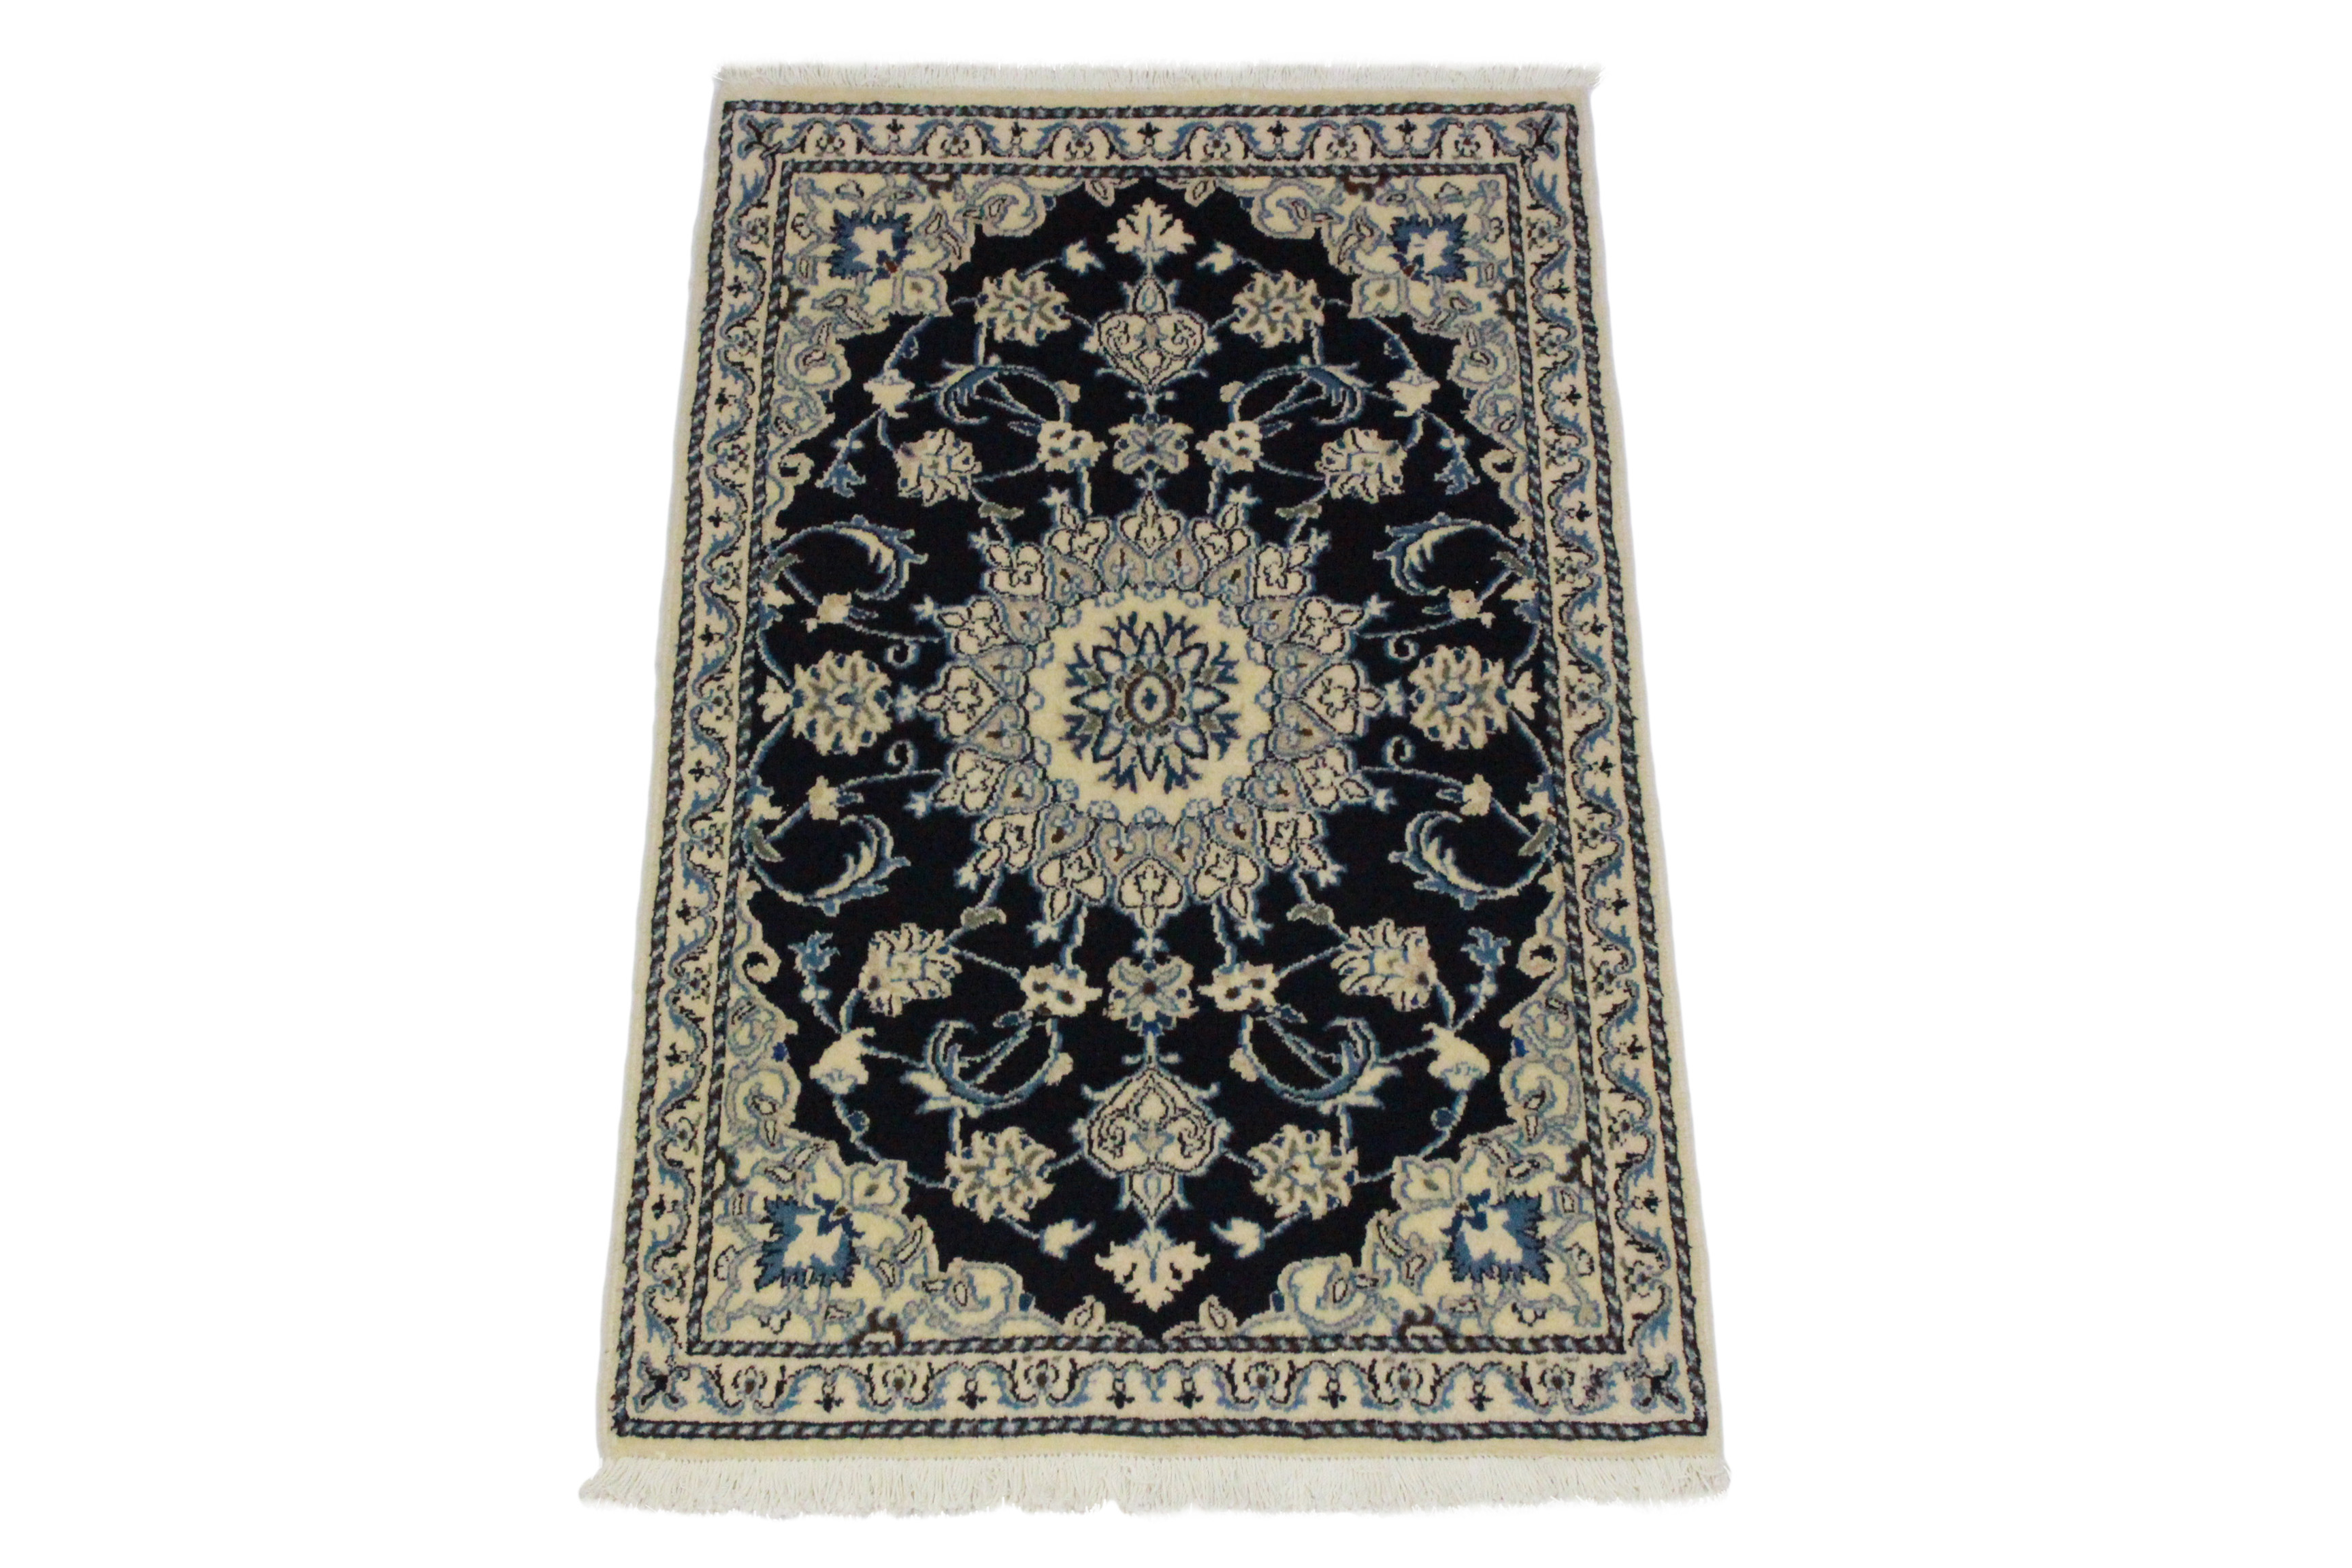 Nain rug beige blue in 130x90 5120 21836 buy online at - Wonderful persian living room designs buying tips for the rug ...